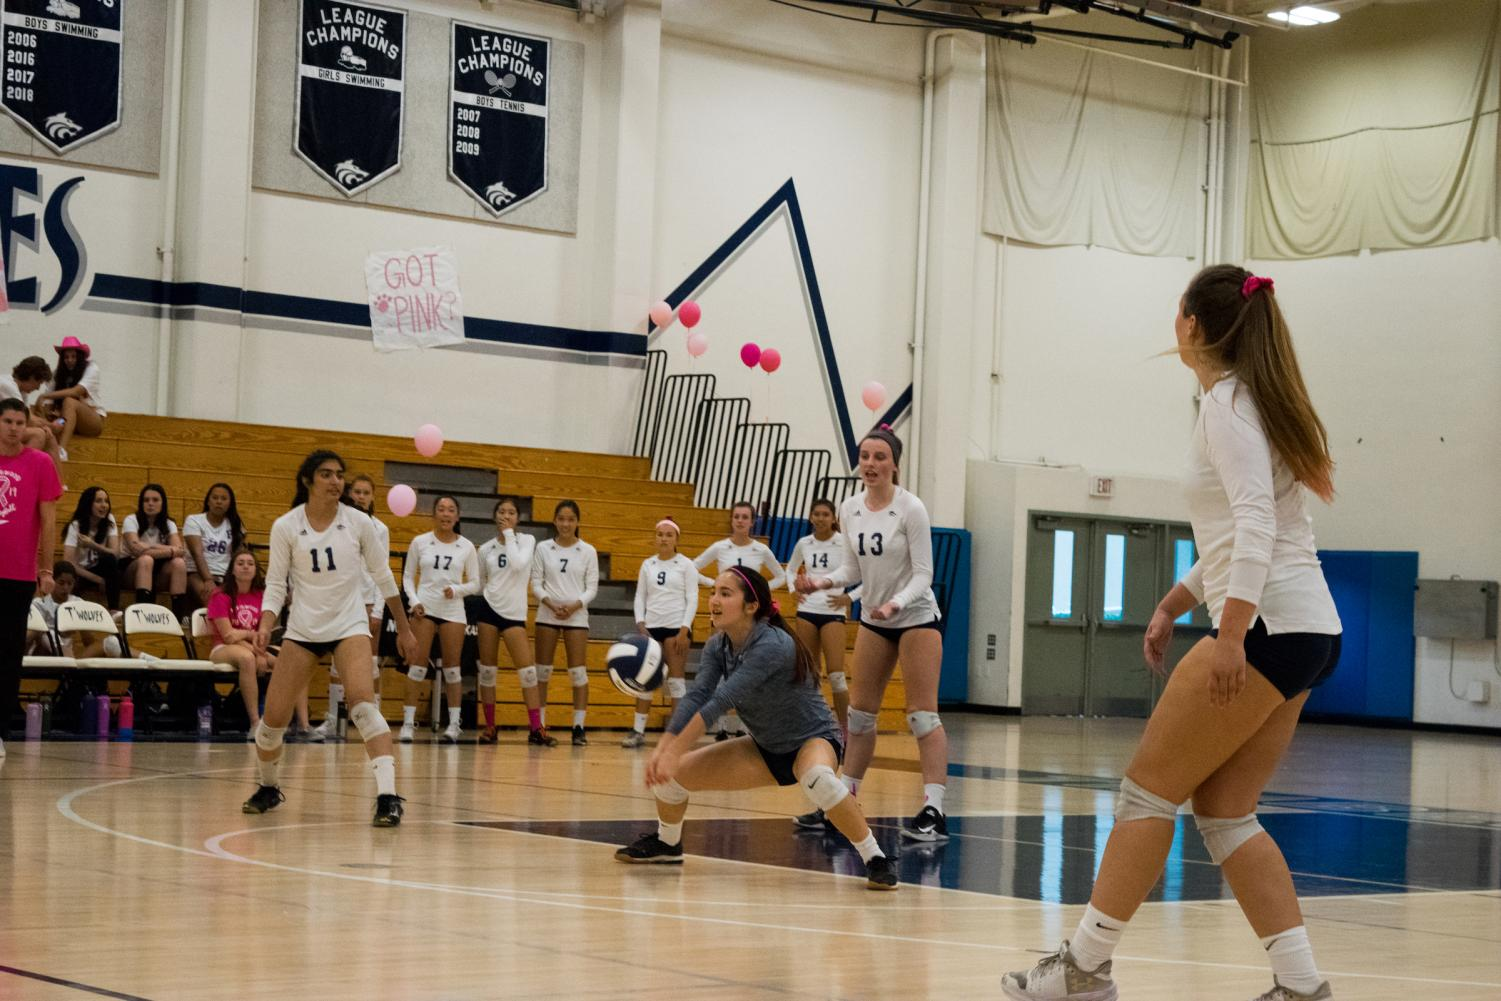 SQUARE UP: Junior Jen Li sets up the team's next play while her teammates get ready.